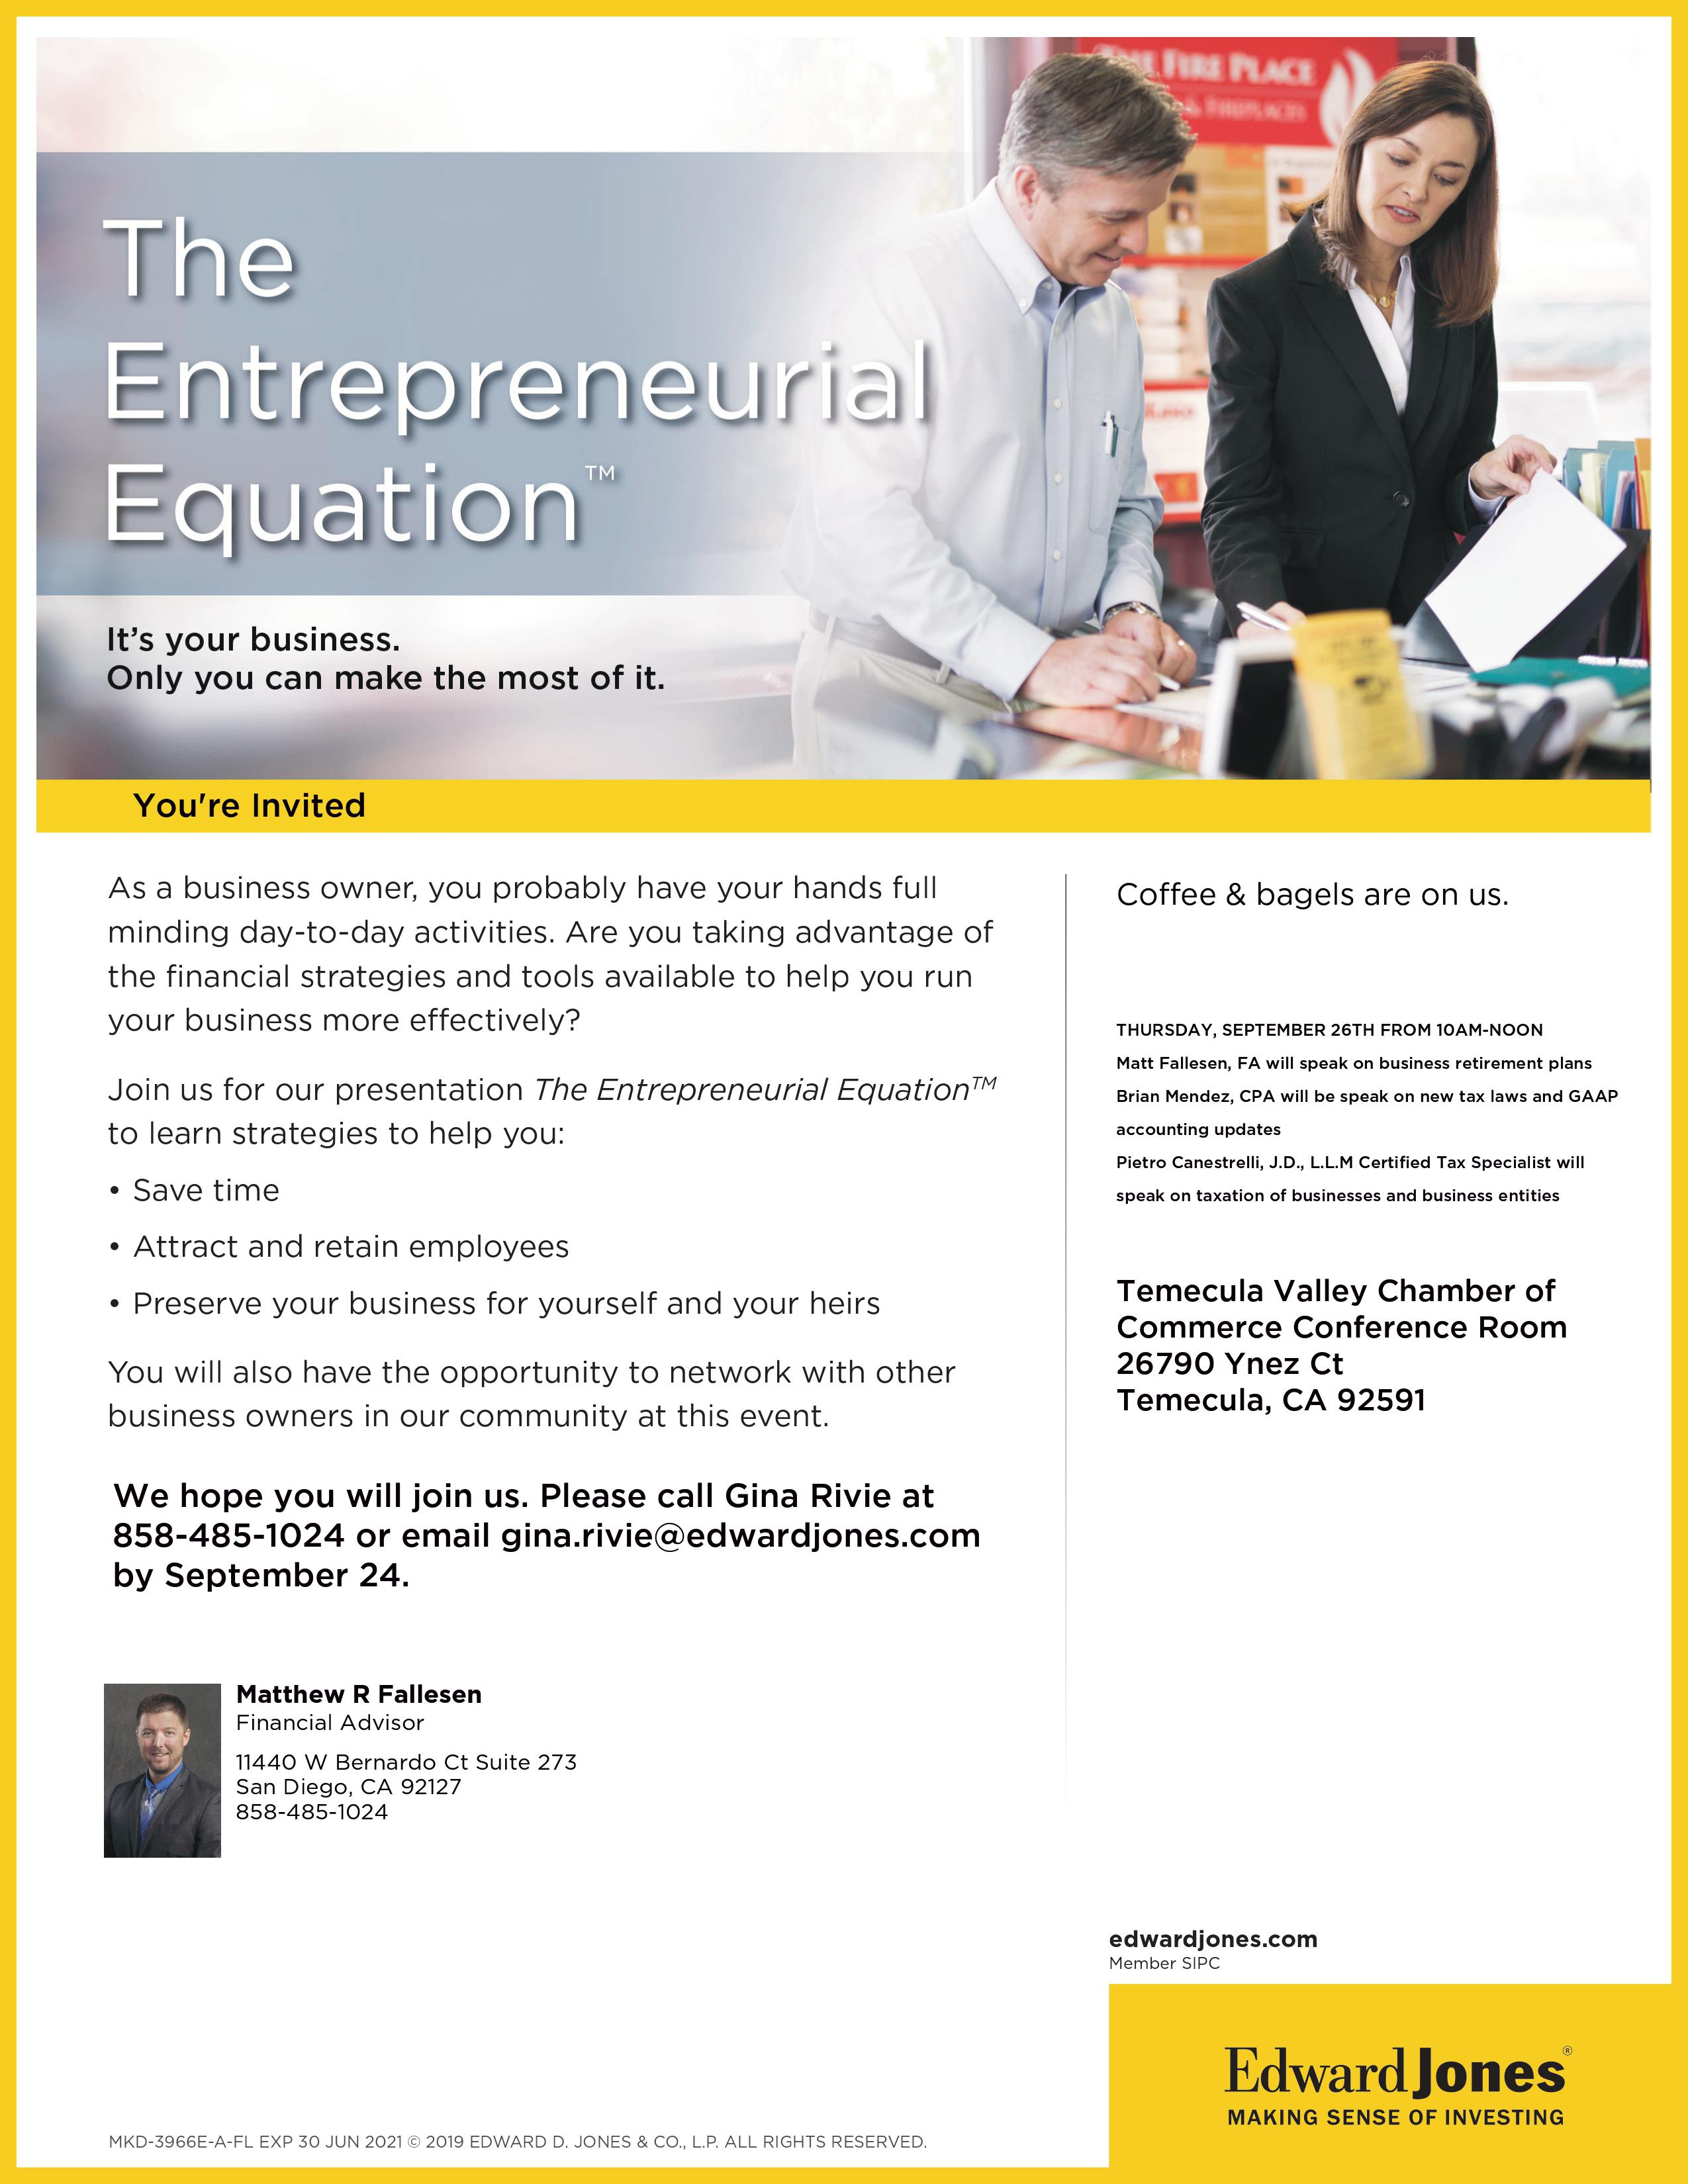 Edward Jones - The Entrepreneurial Equation @ Temecula Valley Chamber of Commerce